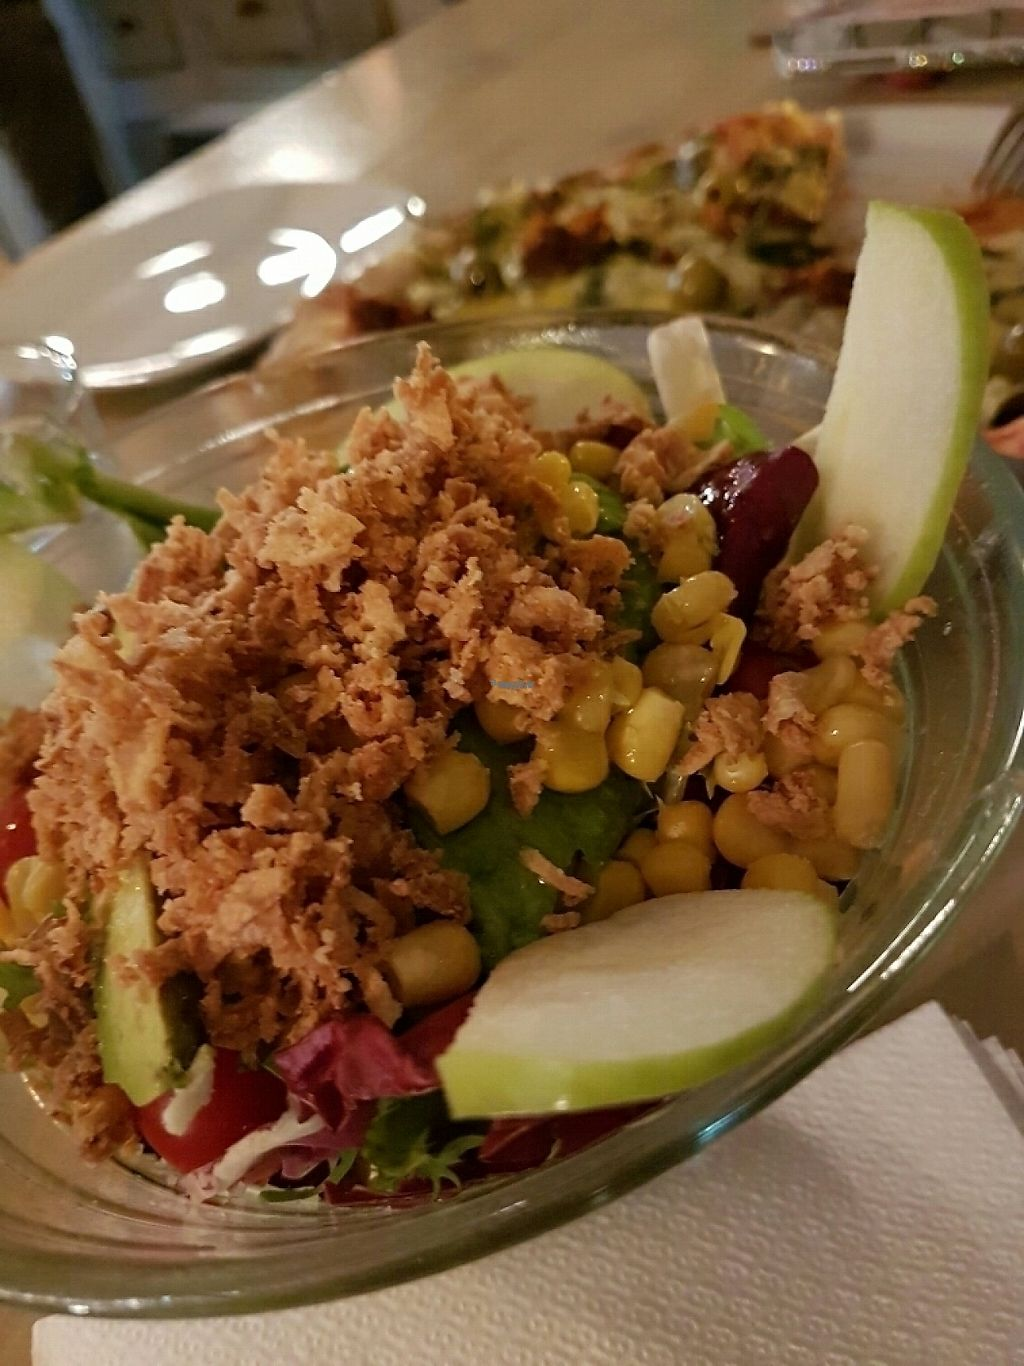 """Photo of Ay Mi Madre  by <a href=""""/members/profile/Tasha2103"""">Tasha2103</a> <br/>Avocado Salad <br/> March 22, 2017  - <a href='/contact/abuse/image/56969/239424'>Report</a>"""